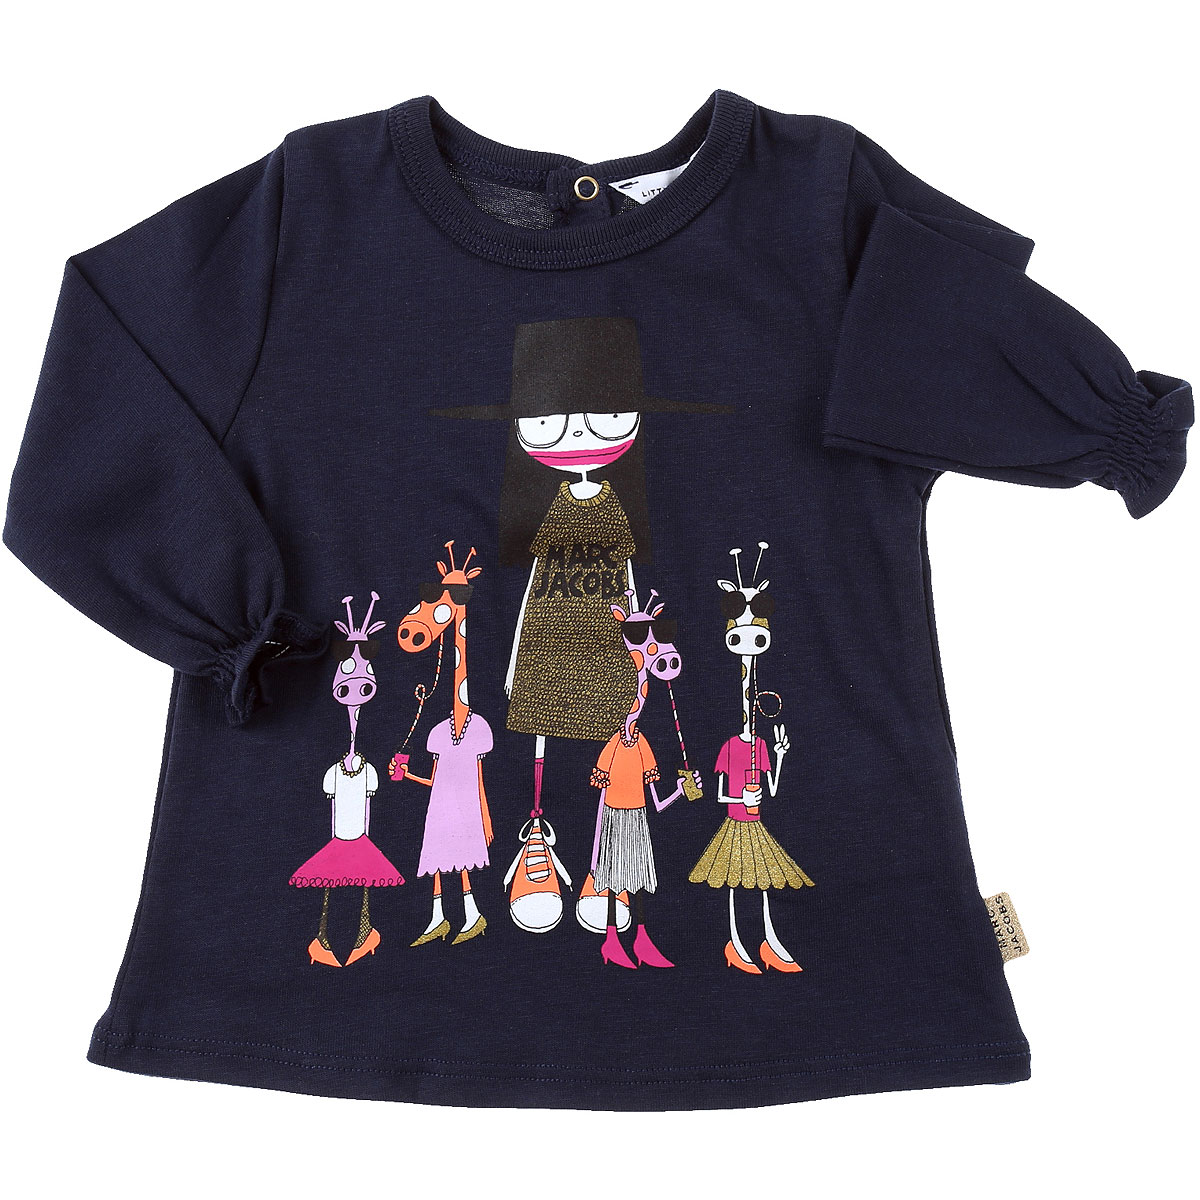 Marc Jacobs Baby T-Shirt for Girls On Sale, navy, Cotton, 2019, 12M 18M 2Y 3Y 6M 9M